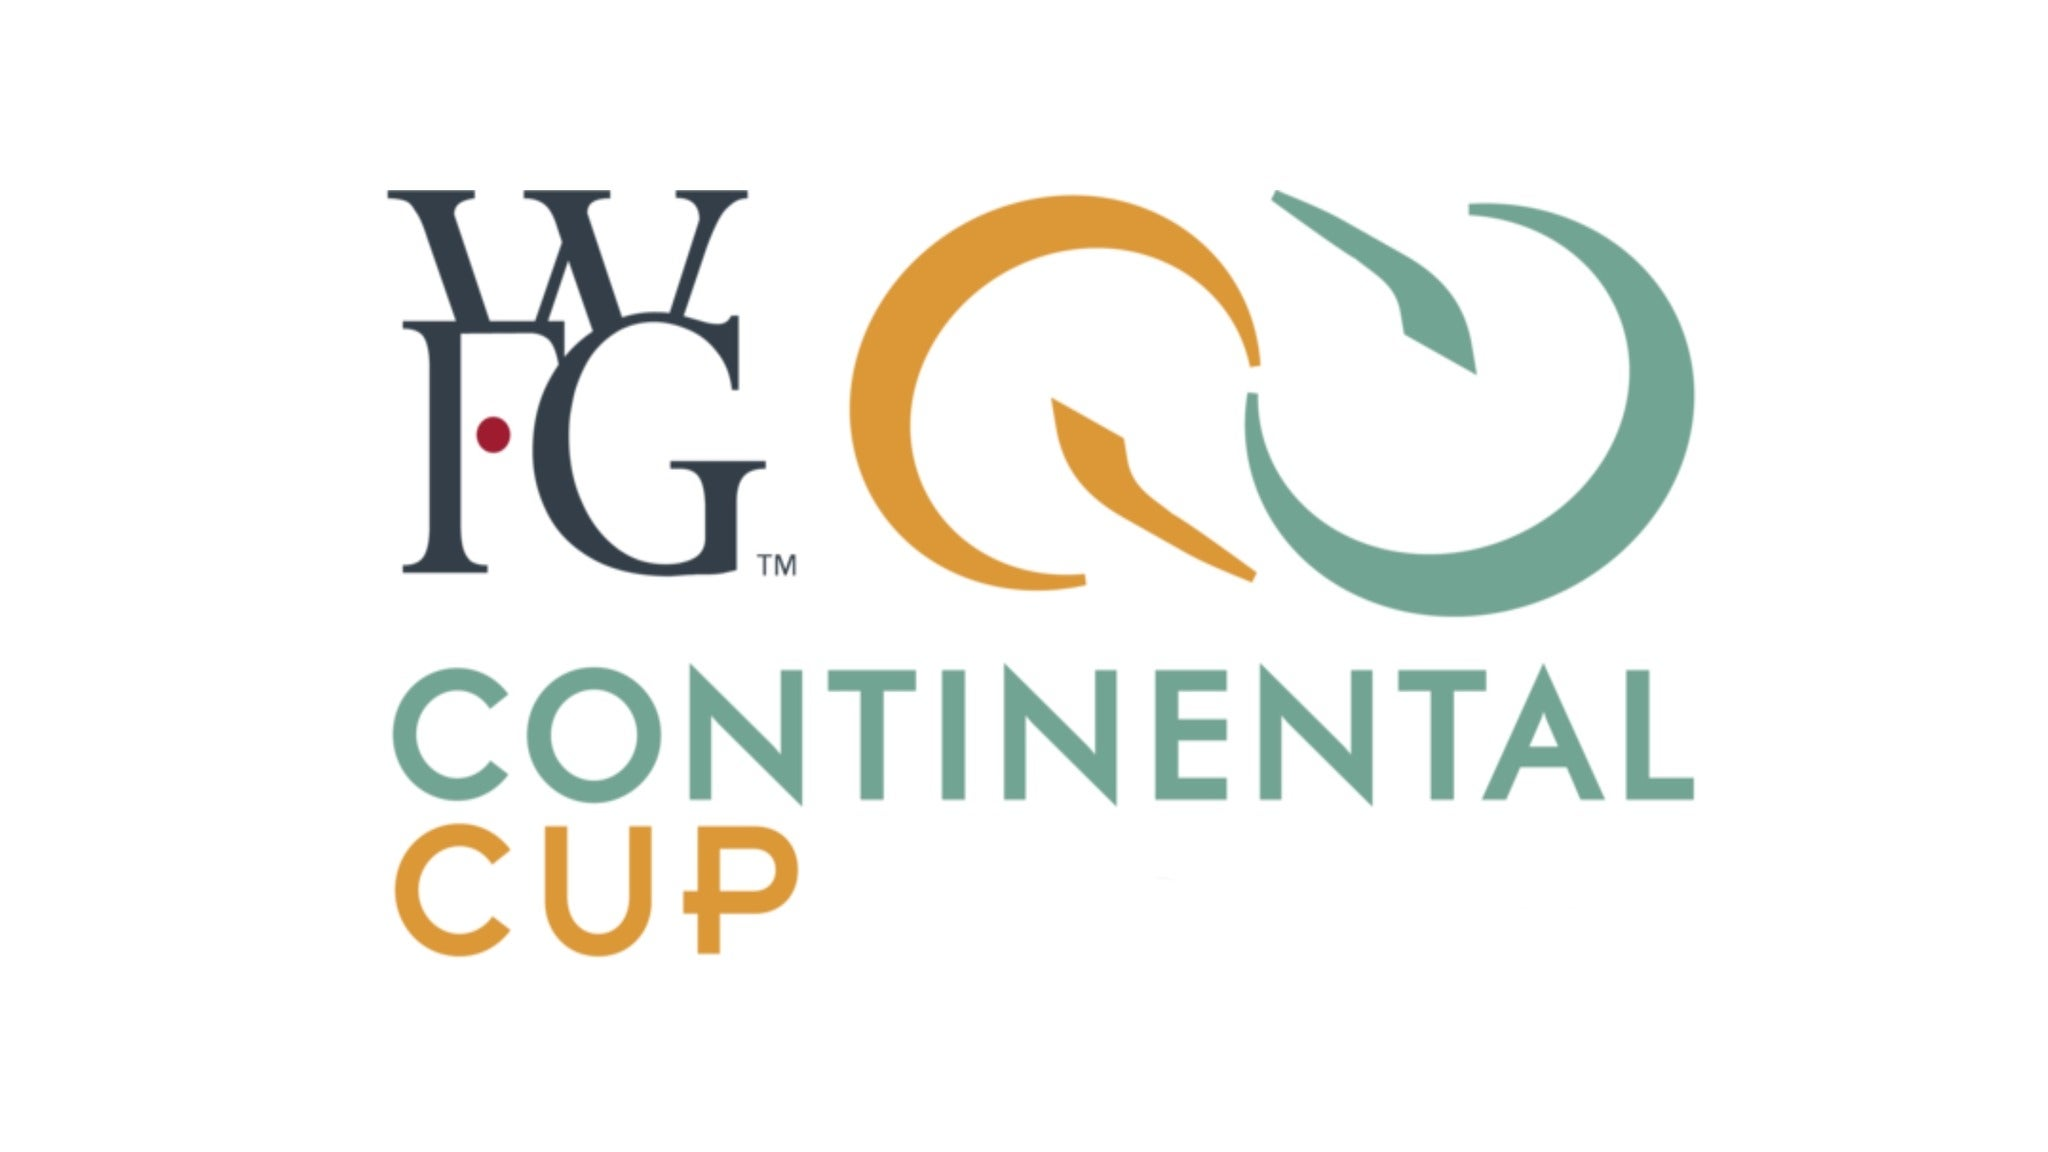 WFG Continental Cup Draw 9 at Orleans Arena